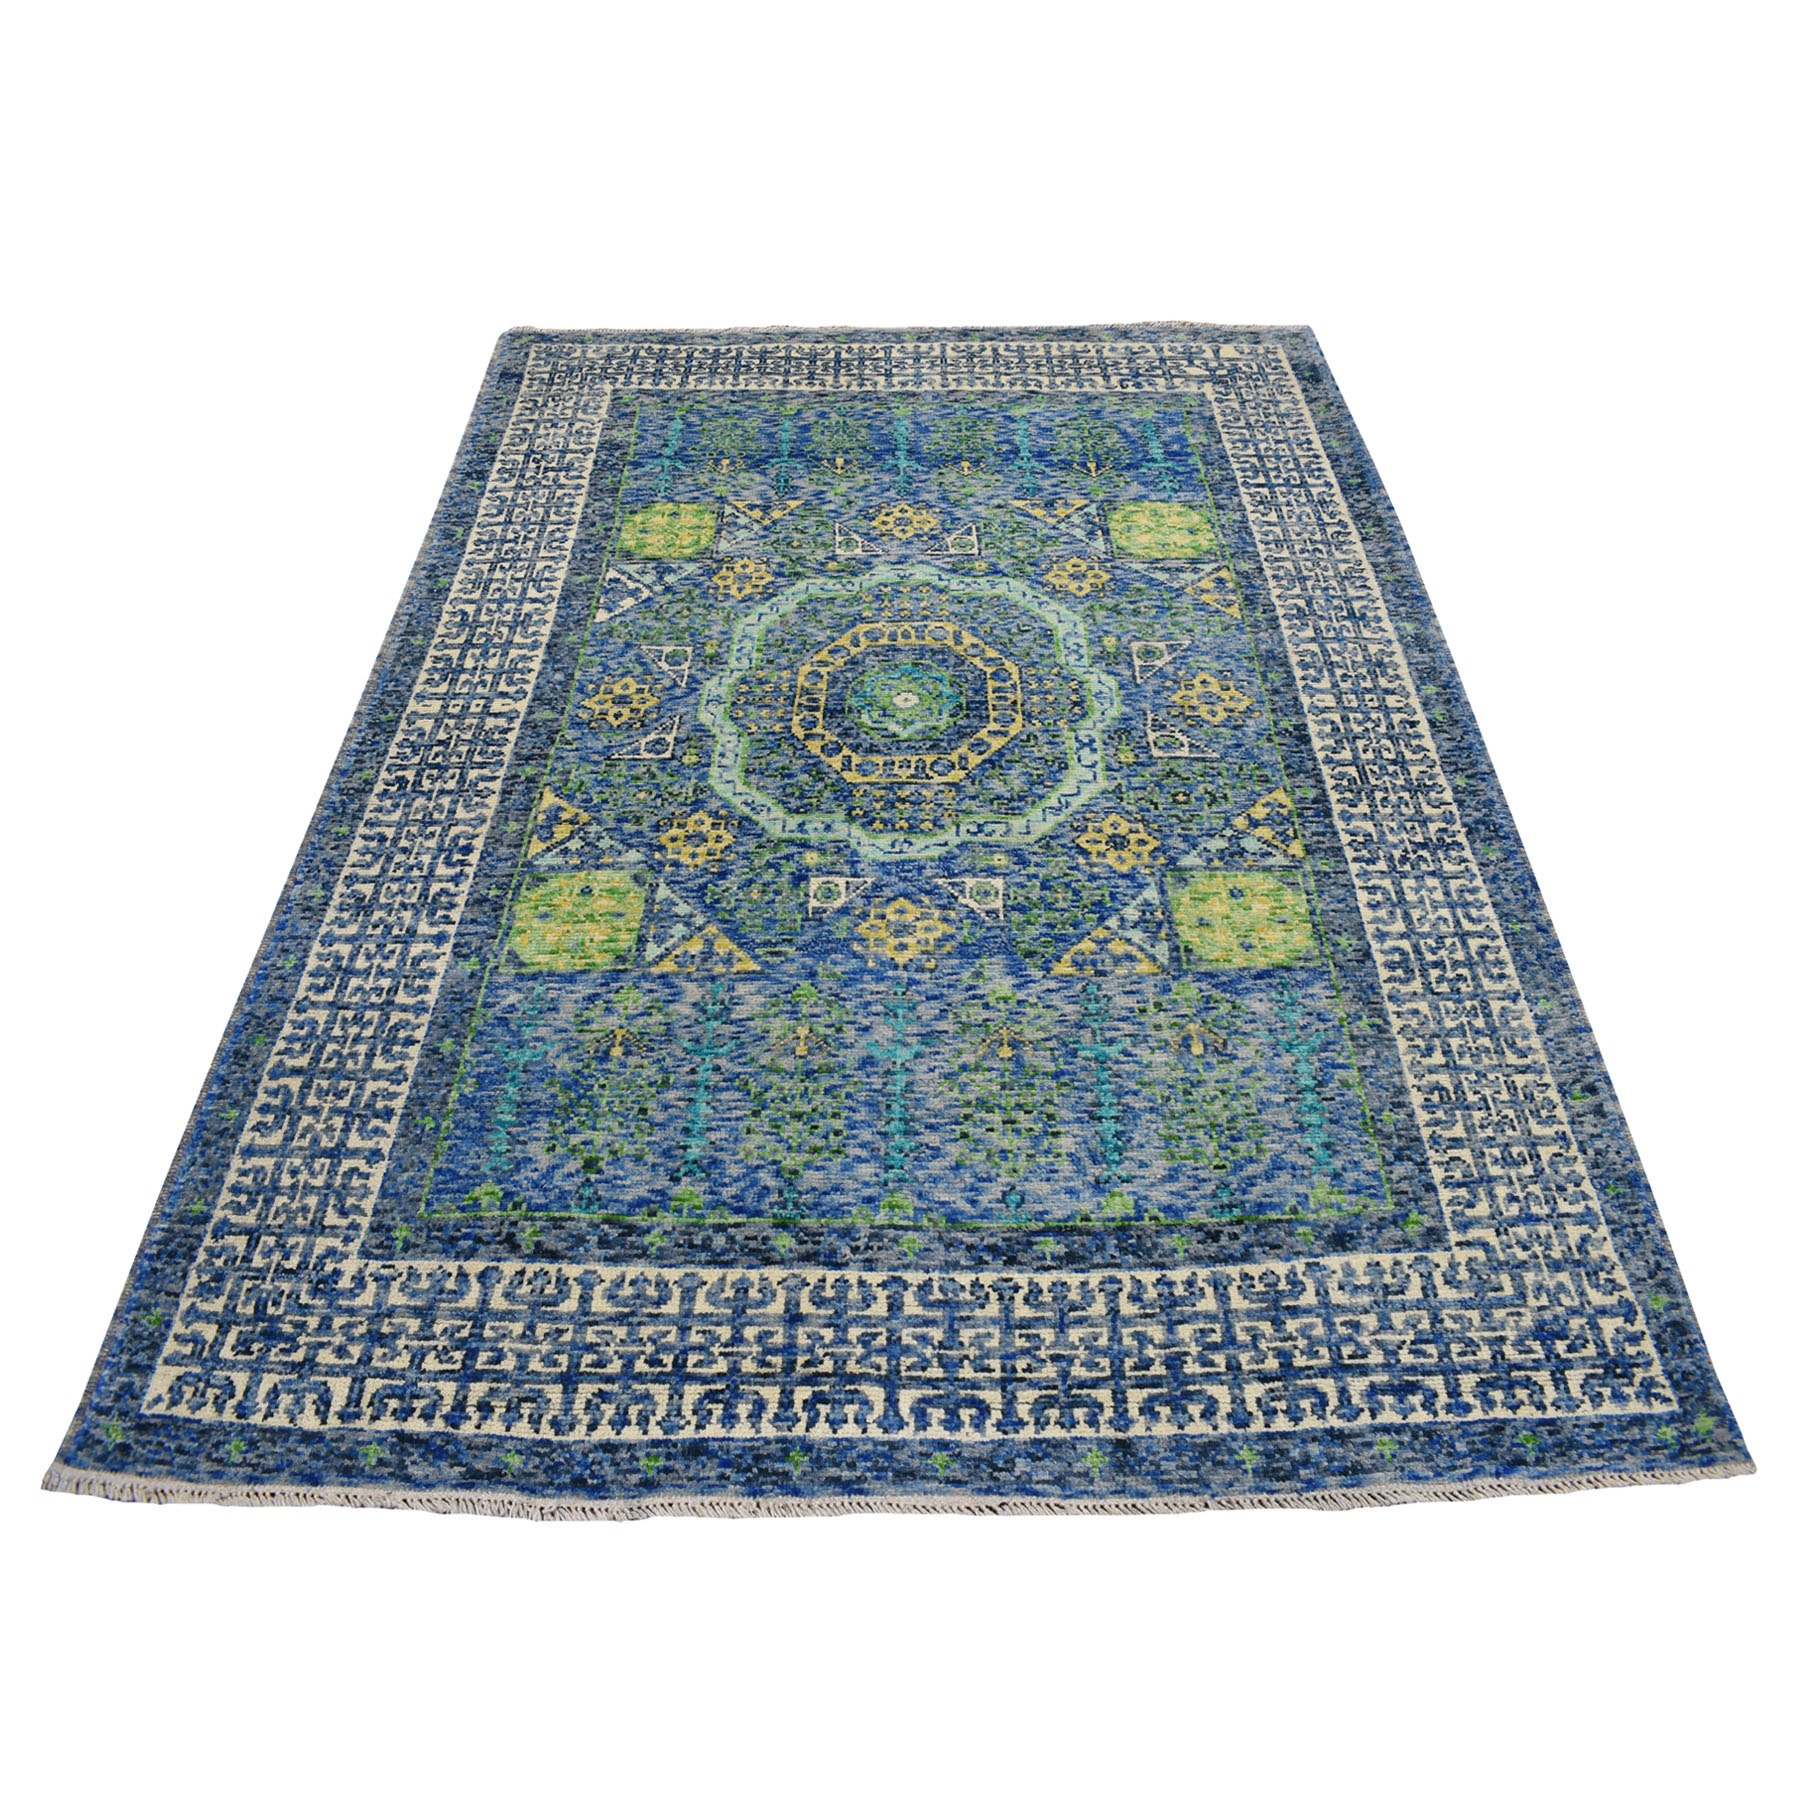 "8'x5'9"" Blue Colorful Afghan Baluch Mamluk Design Hand Knotted Pure Wool Oriental Rug"